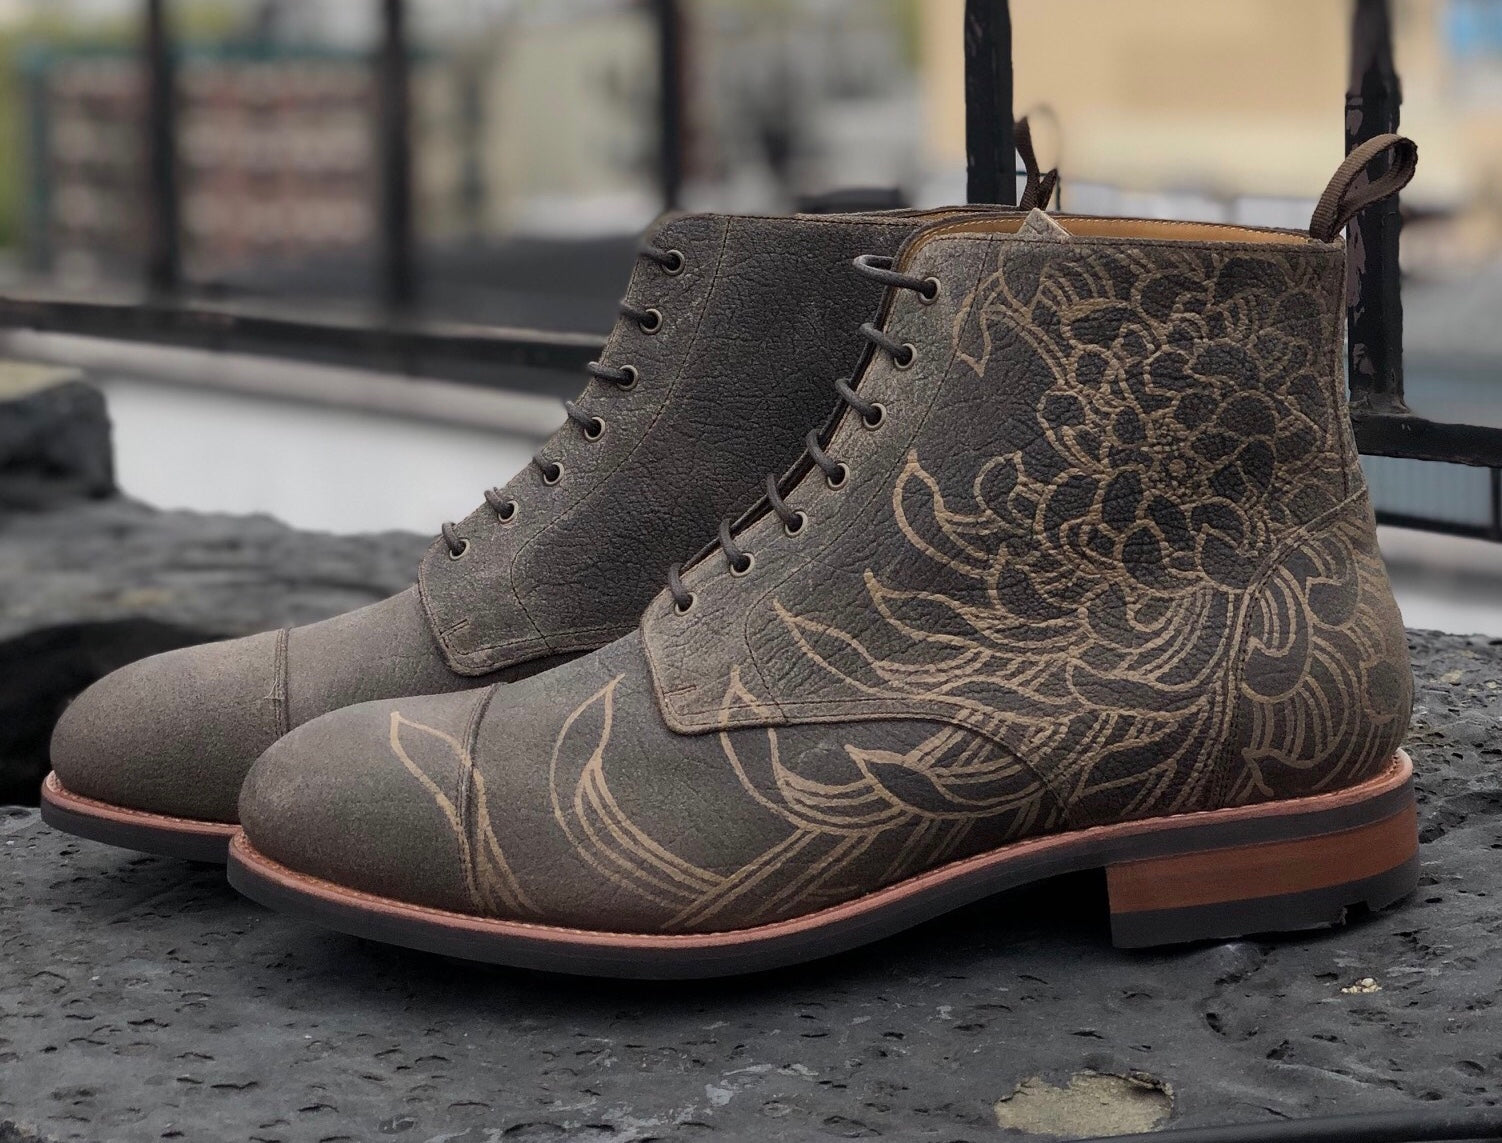 dragon boots in london fog with floral patten etched into the leather